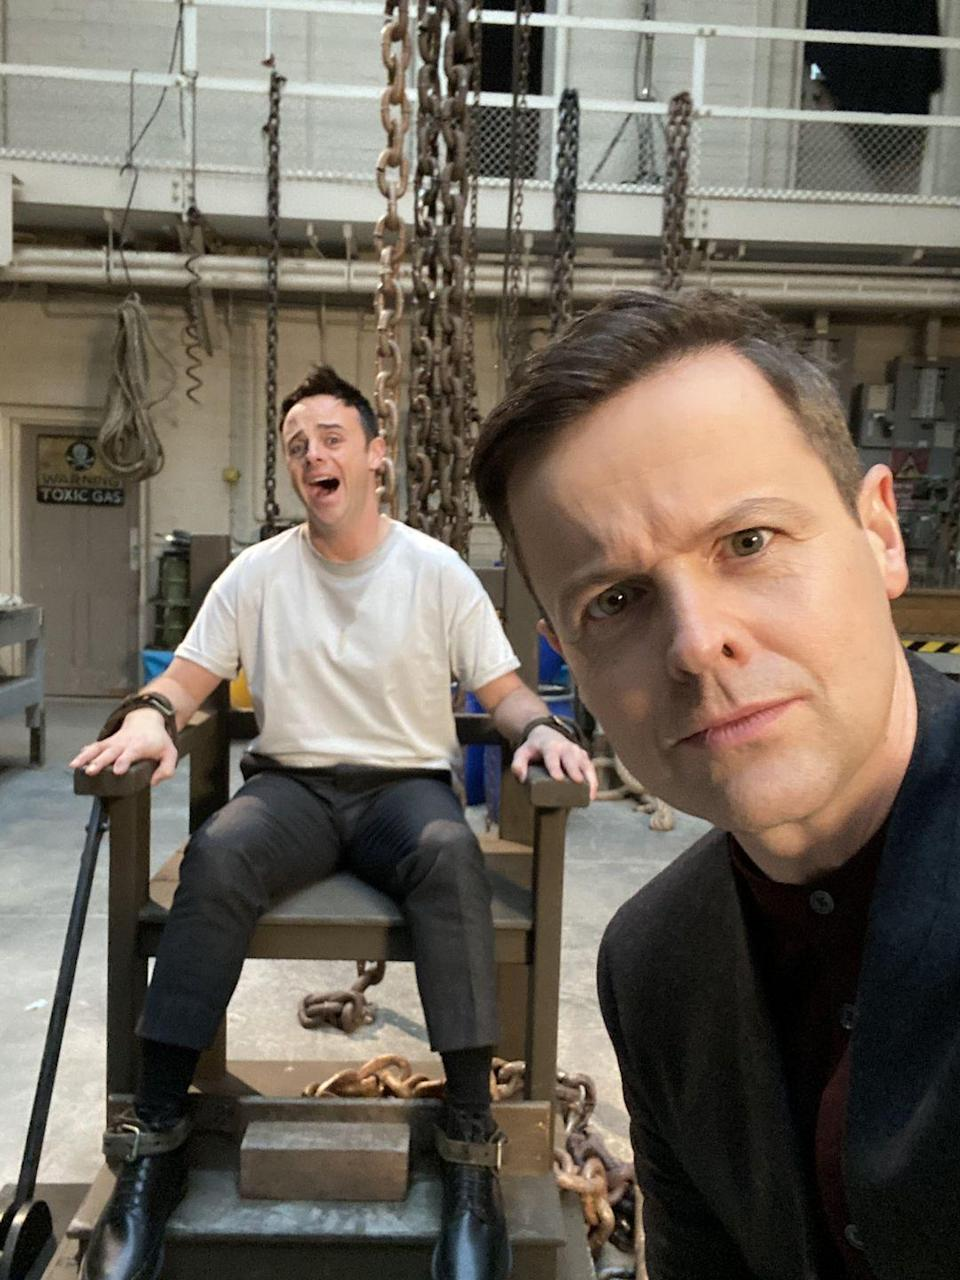 Photo credit: Ant and Dec - Twitter